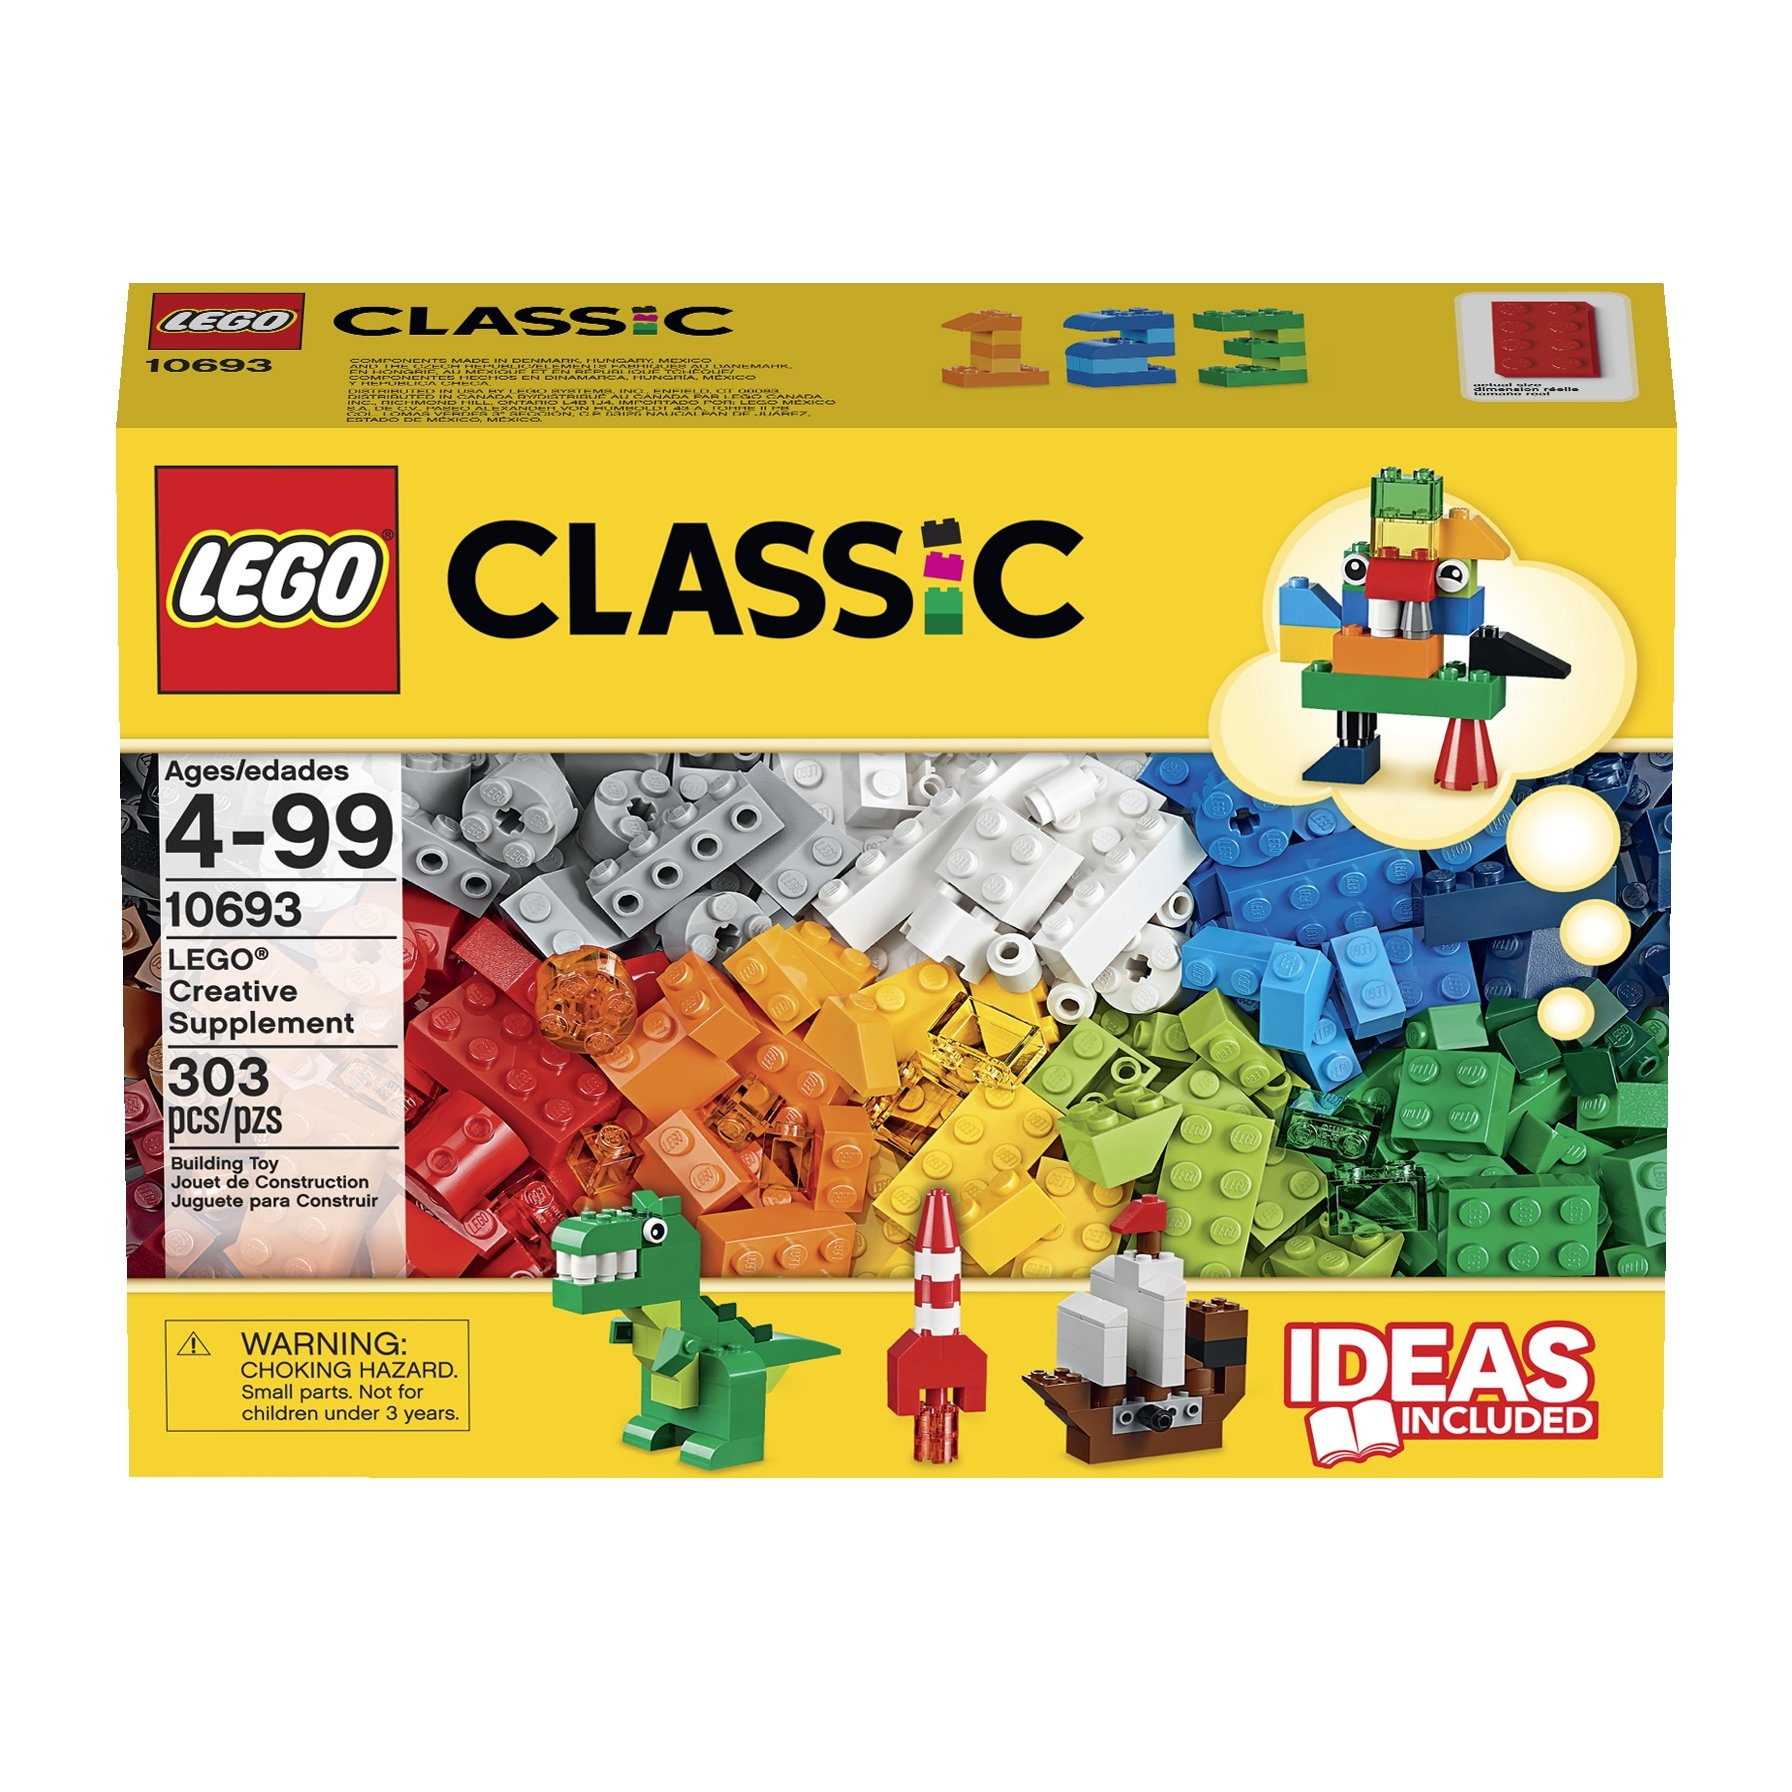 LEGO Classic Creative Supplement 10693 by LEGO (Image #2)